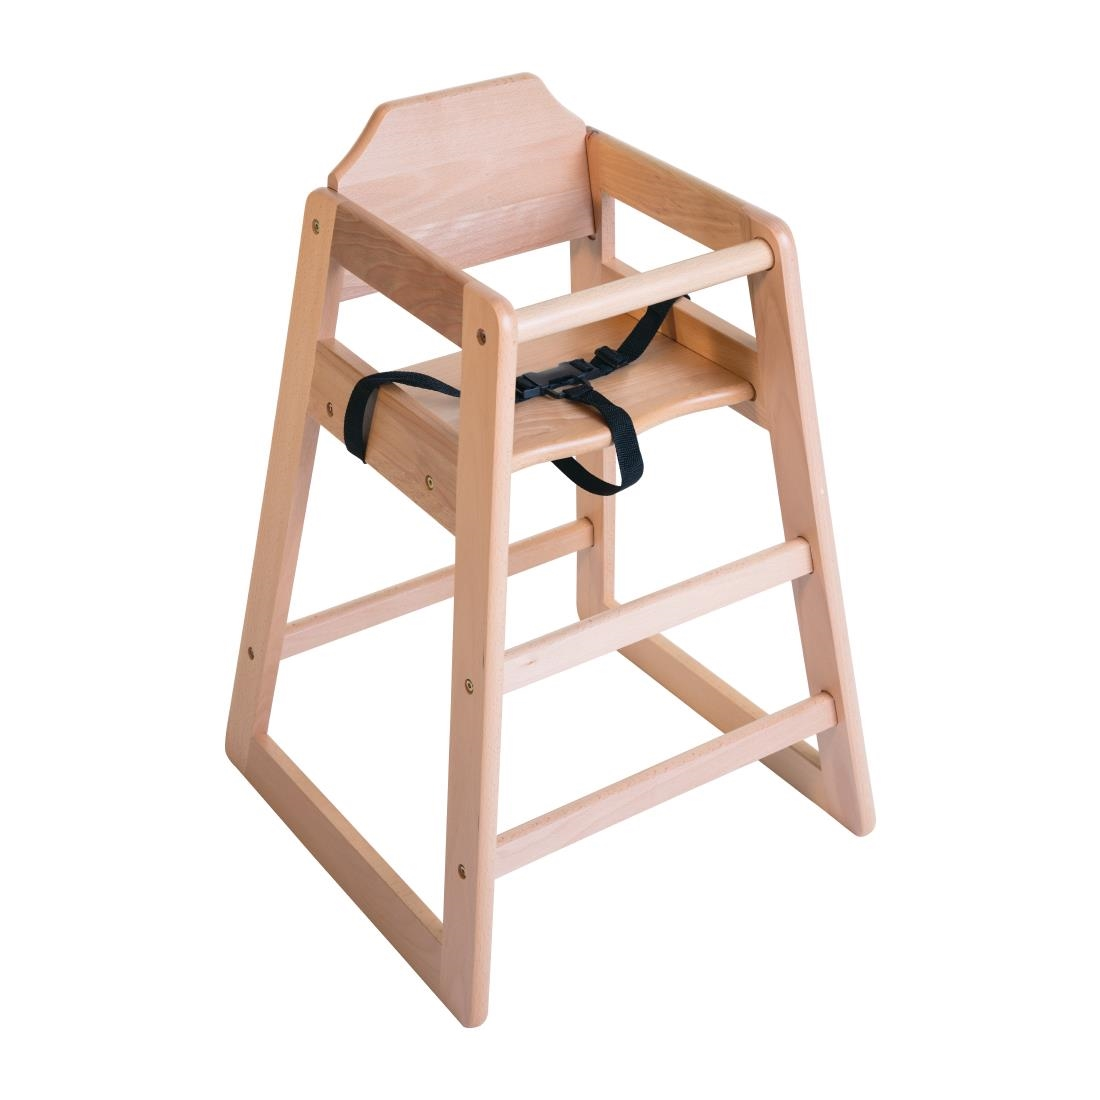 Bolero Wooden High Chair - Natural